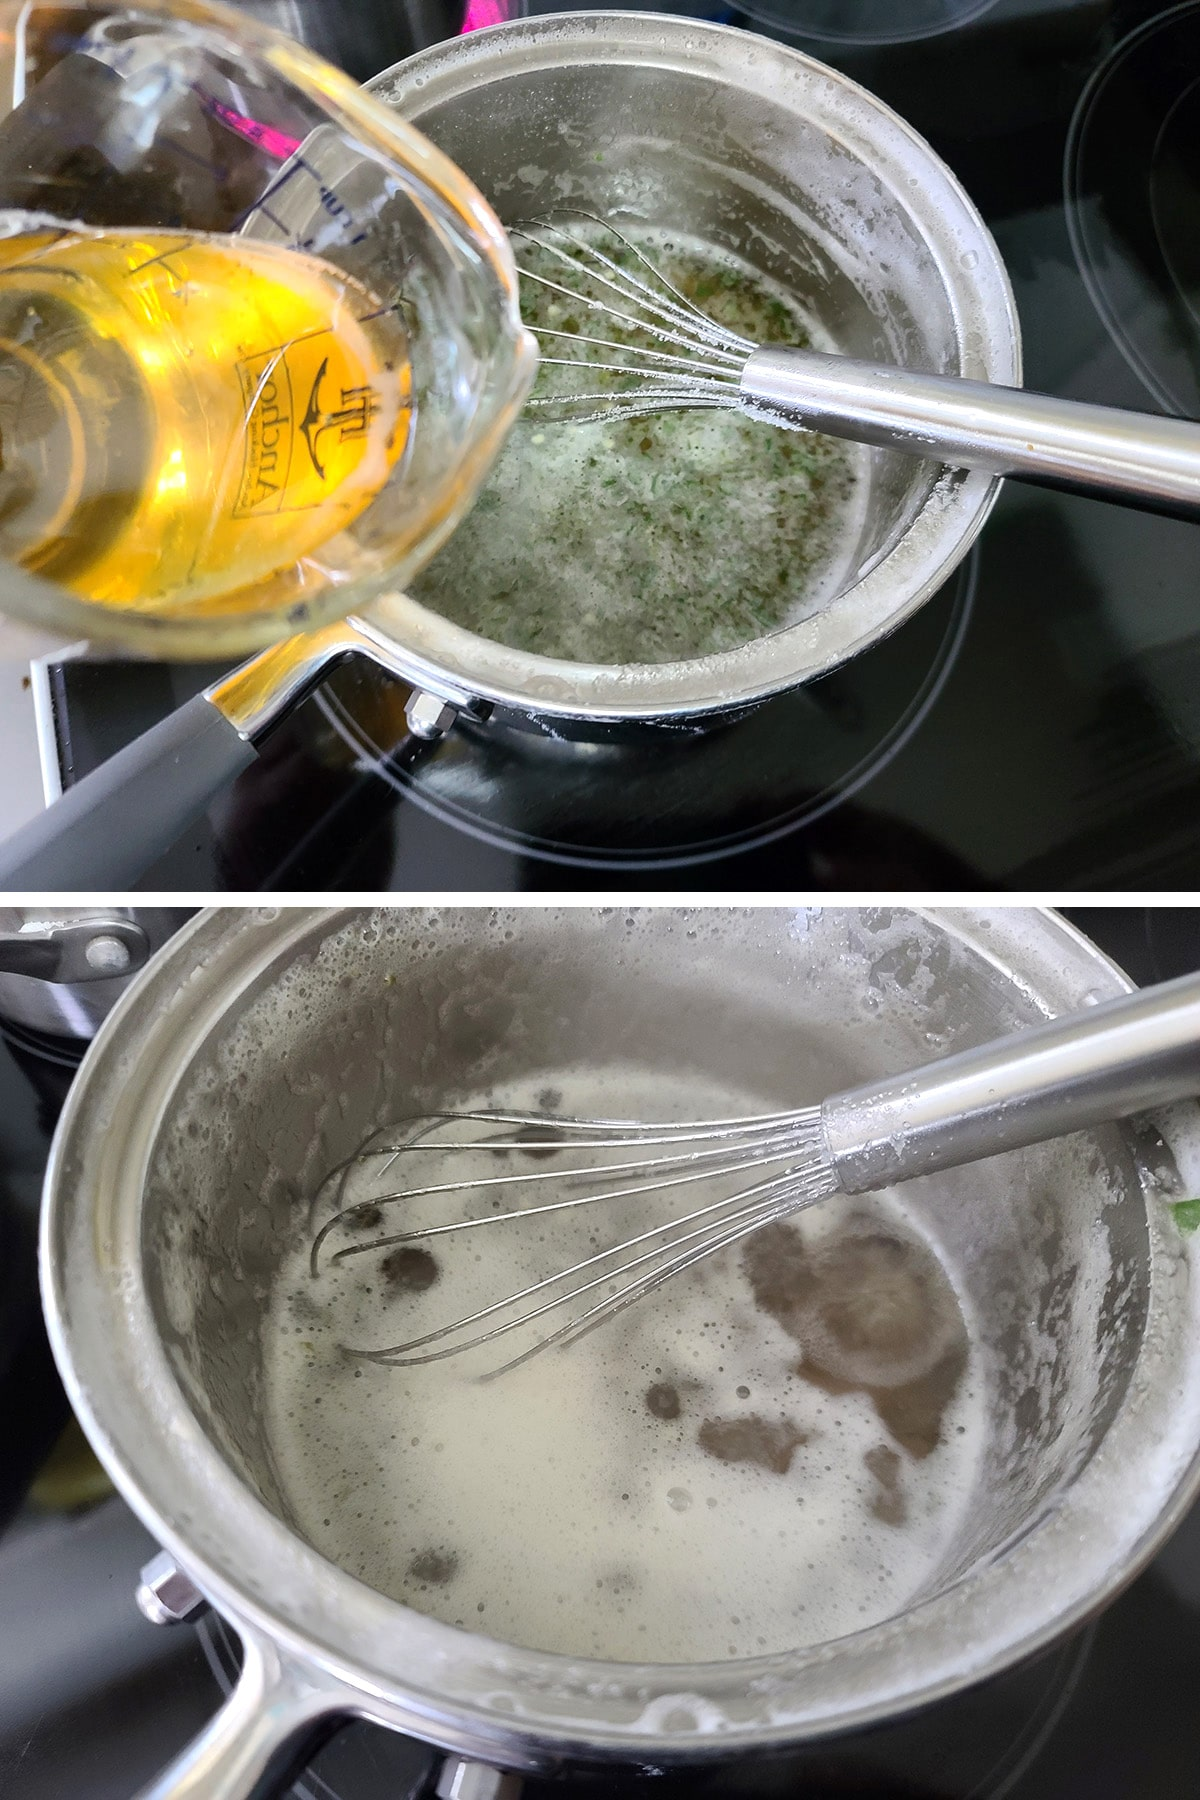 A two part image showing honey being added to the jalapeno beer mixture, and the pot of syrup simmering.